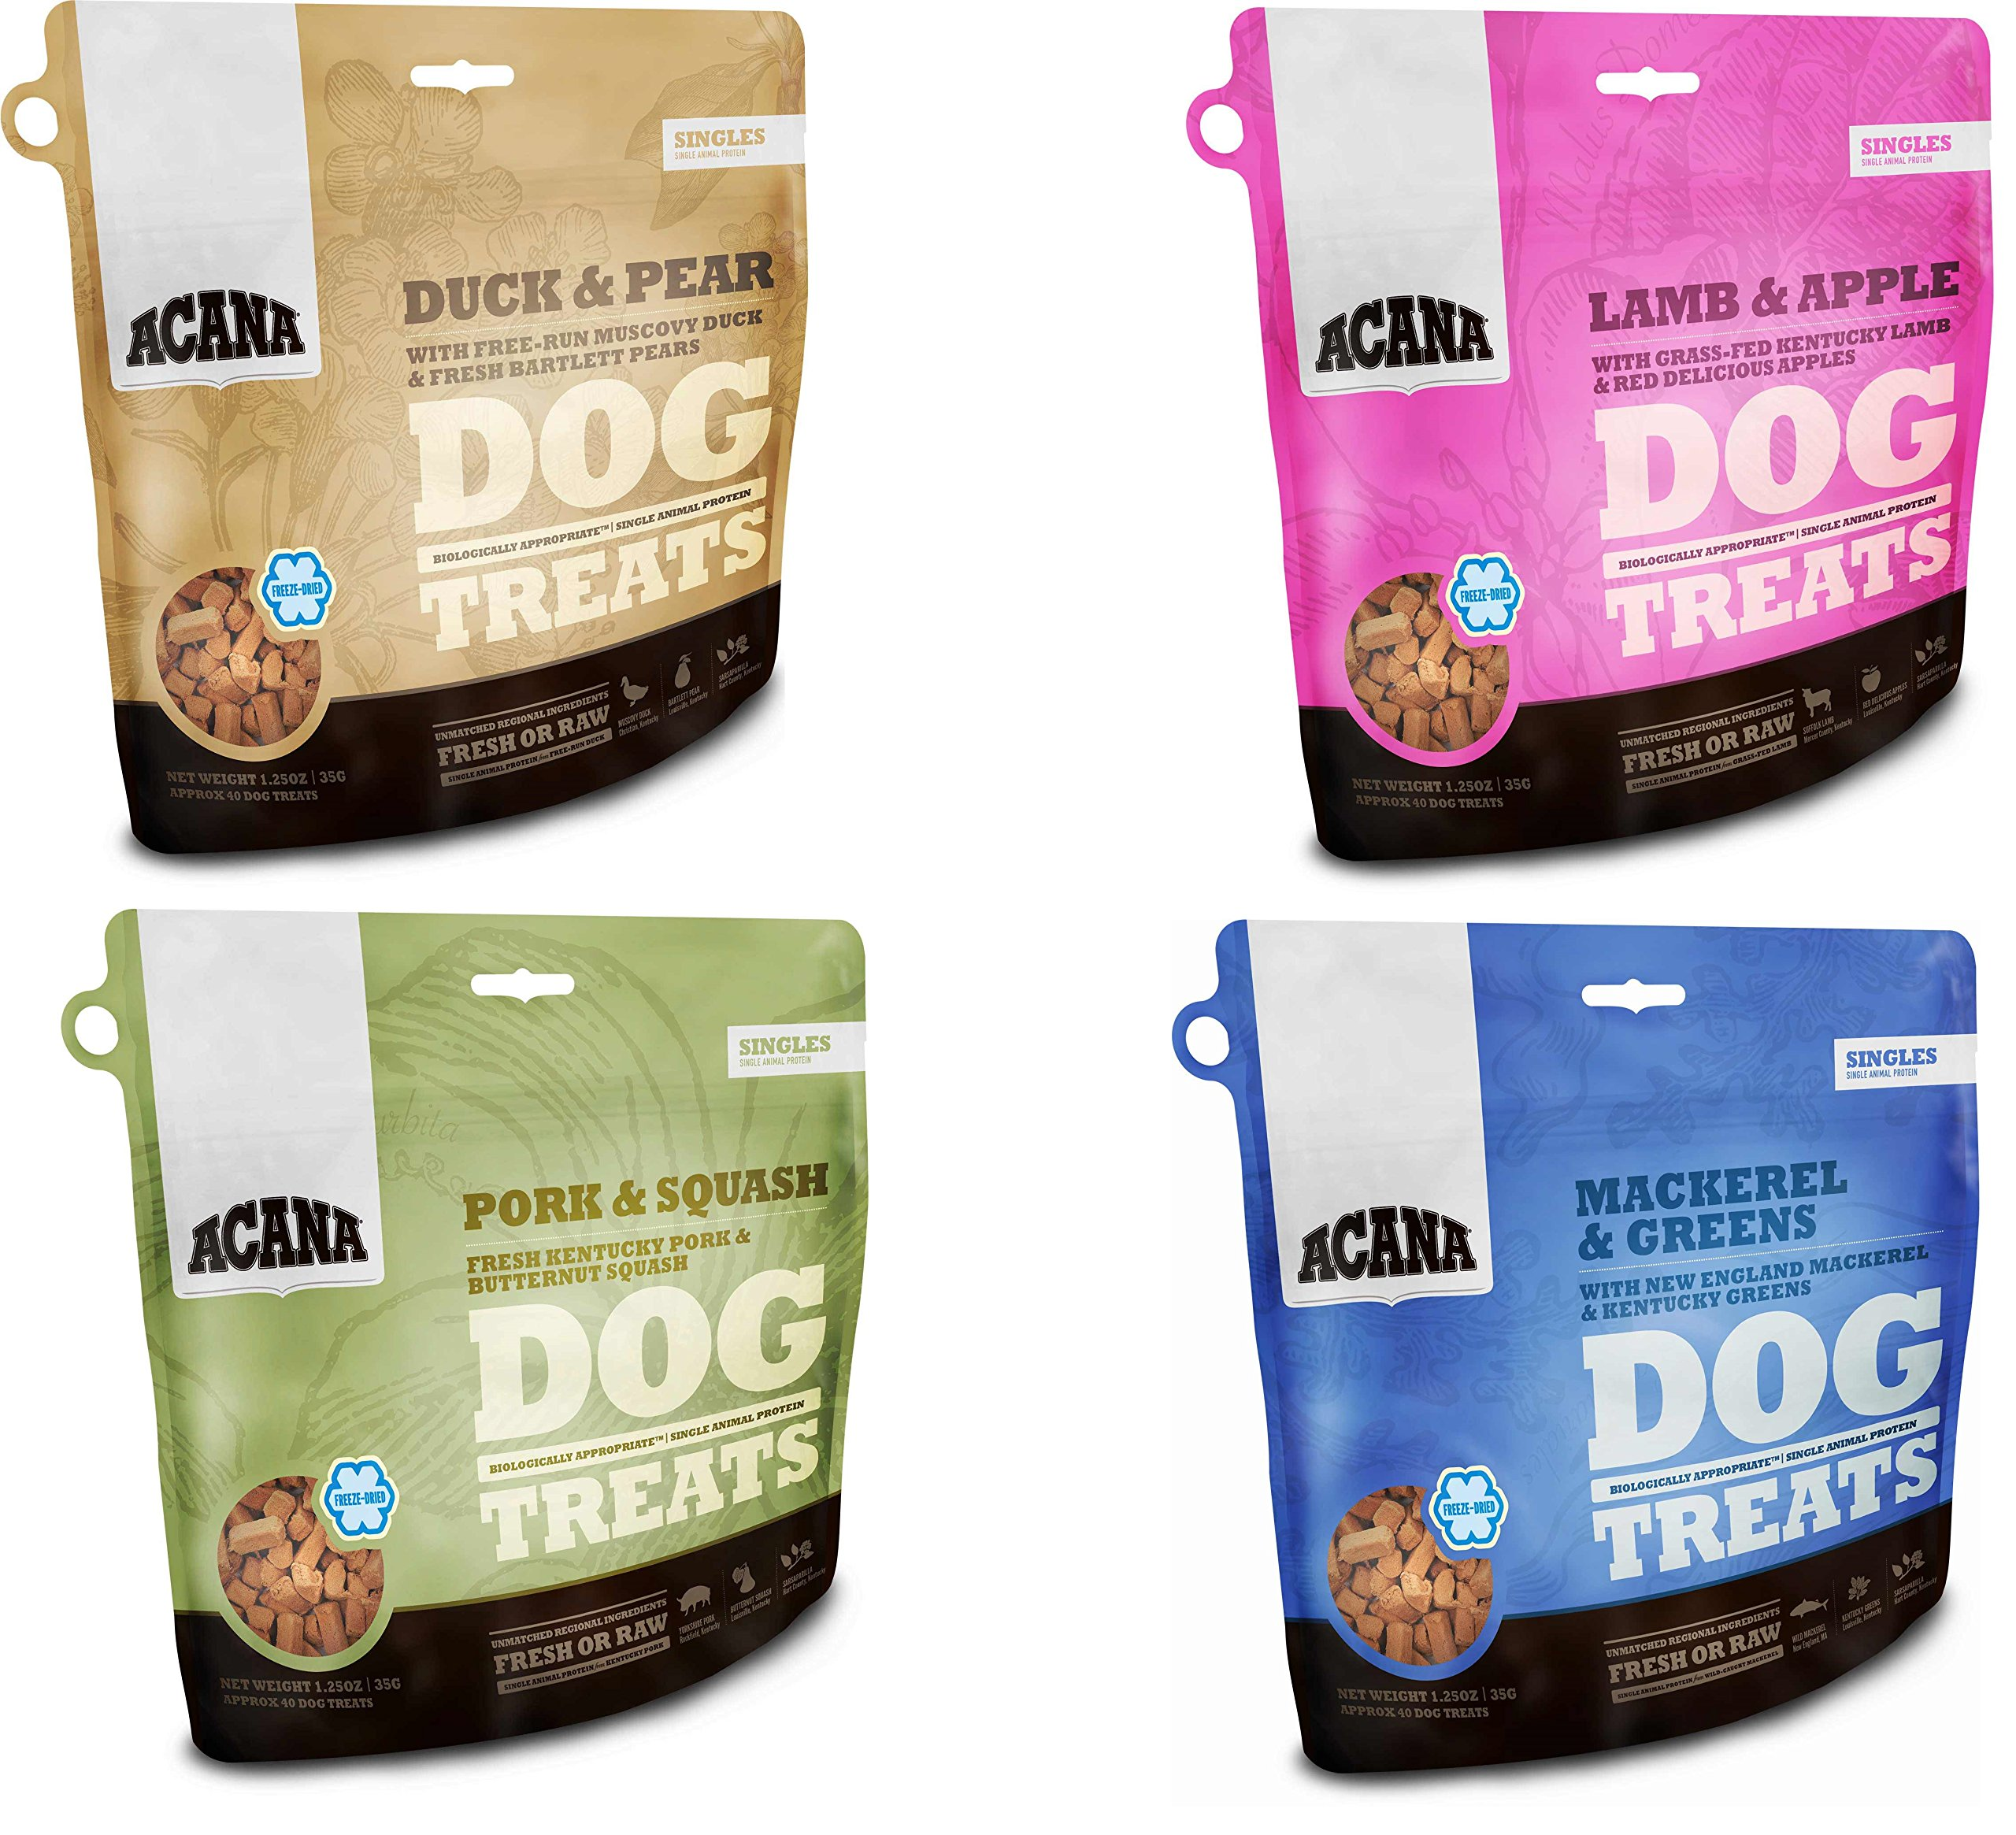 Acana Singles Dog Treats - Variety Pack of 4 (1-Duck and Pears, 1-Lamb and Apple, 1-Mackerel and Greens, and 1-Pork and Squash) 1.25oz Each